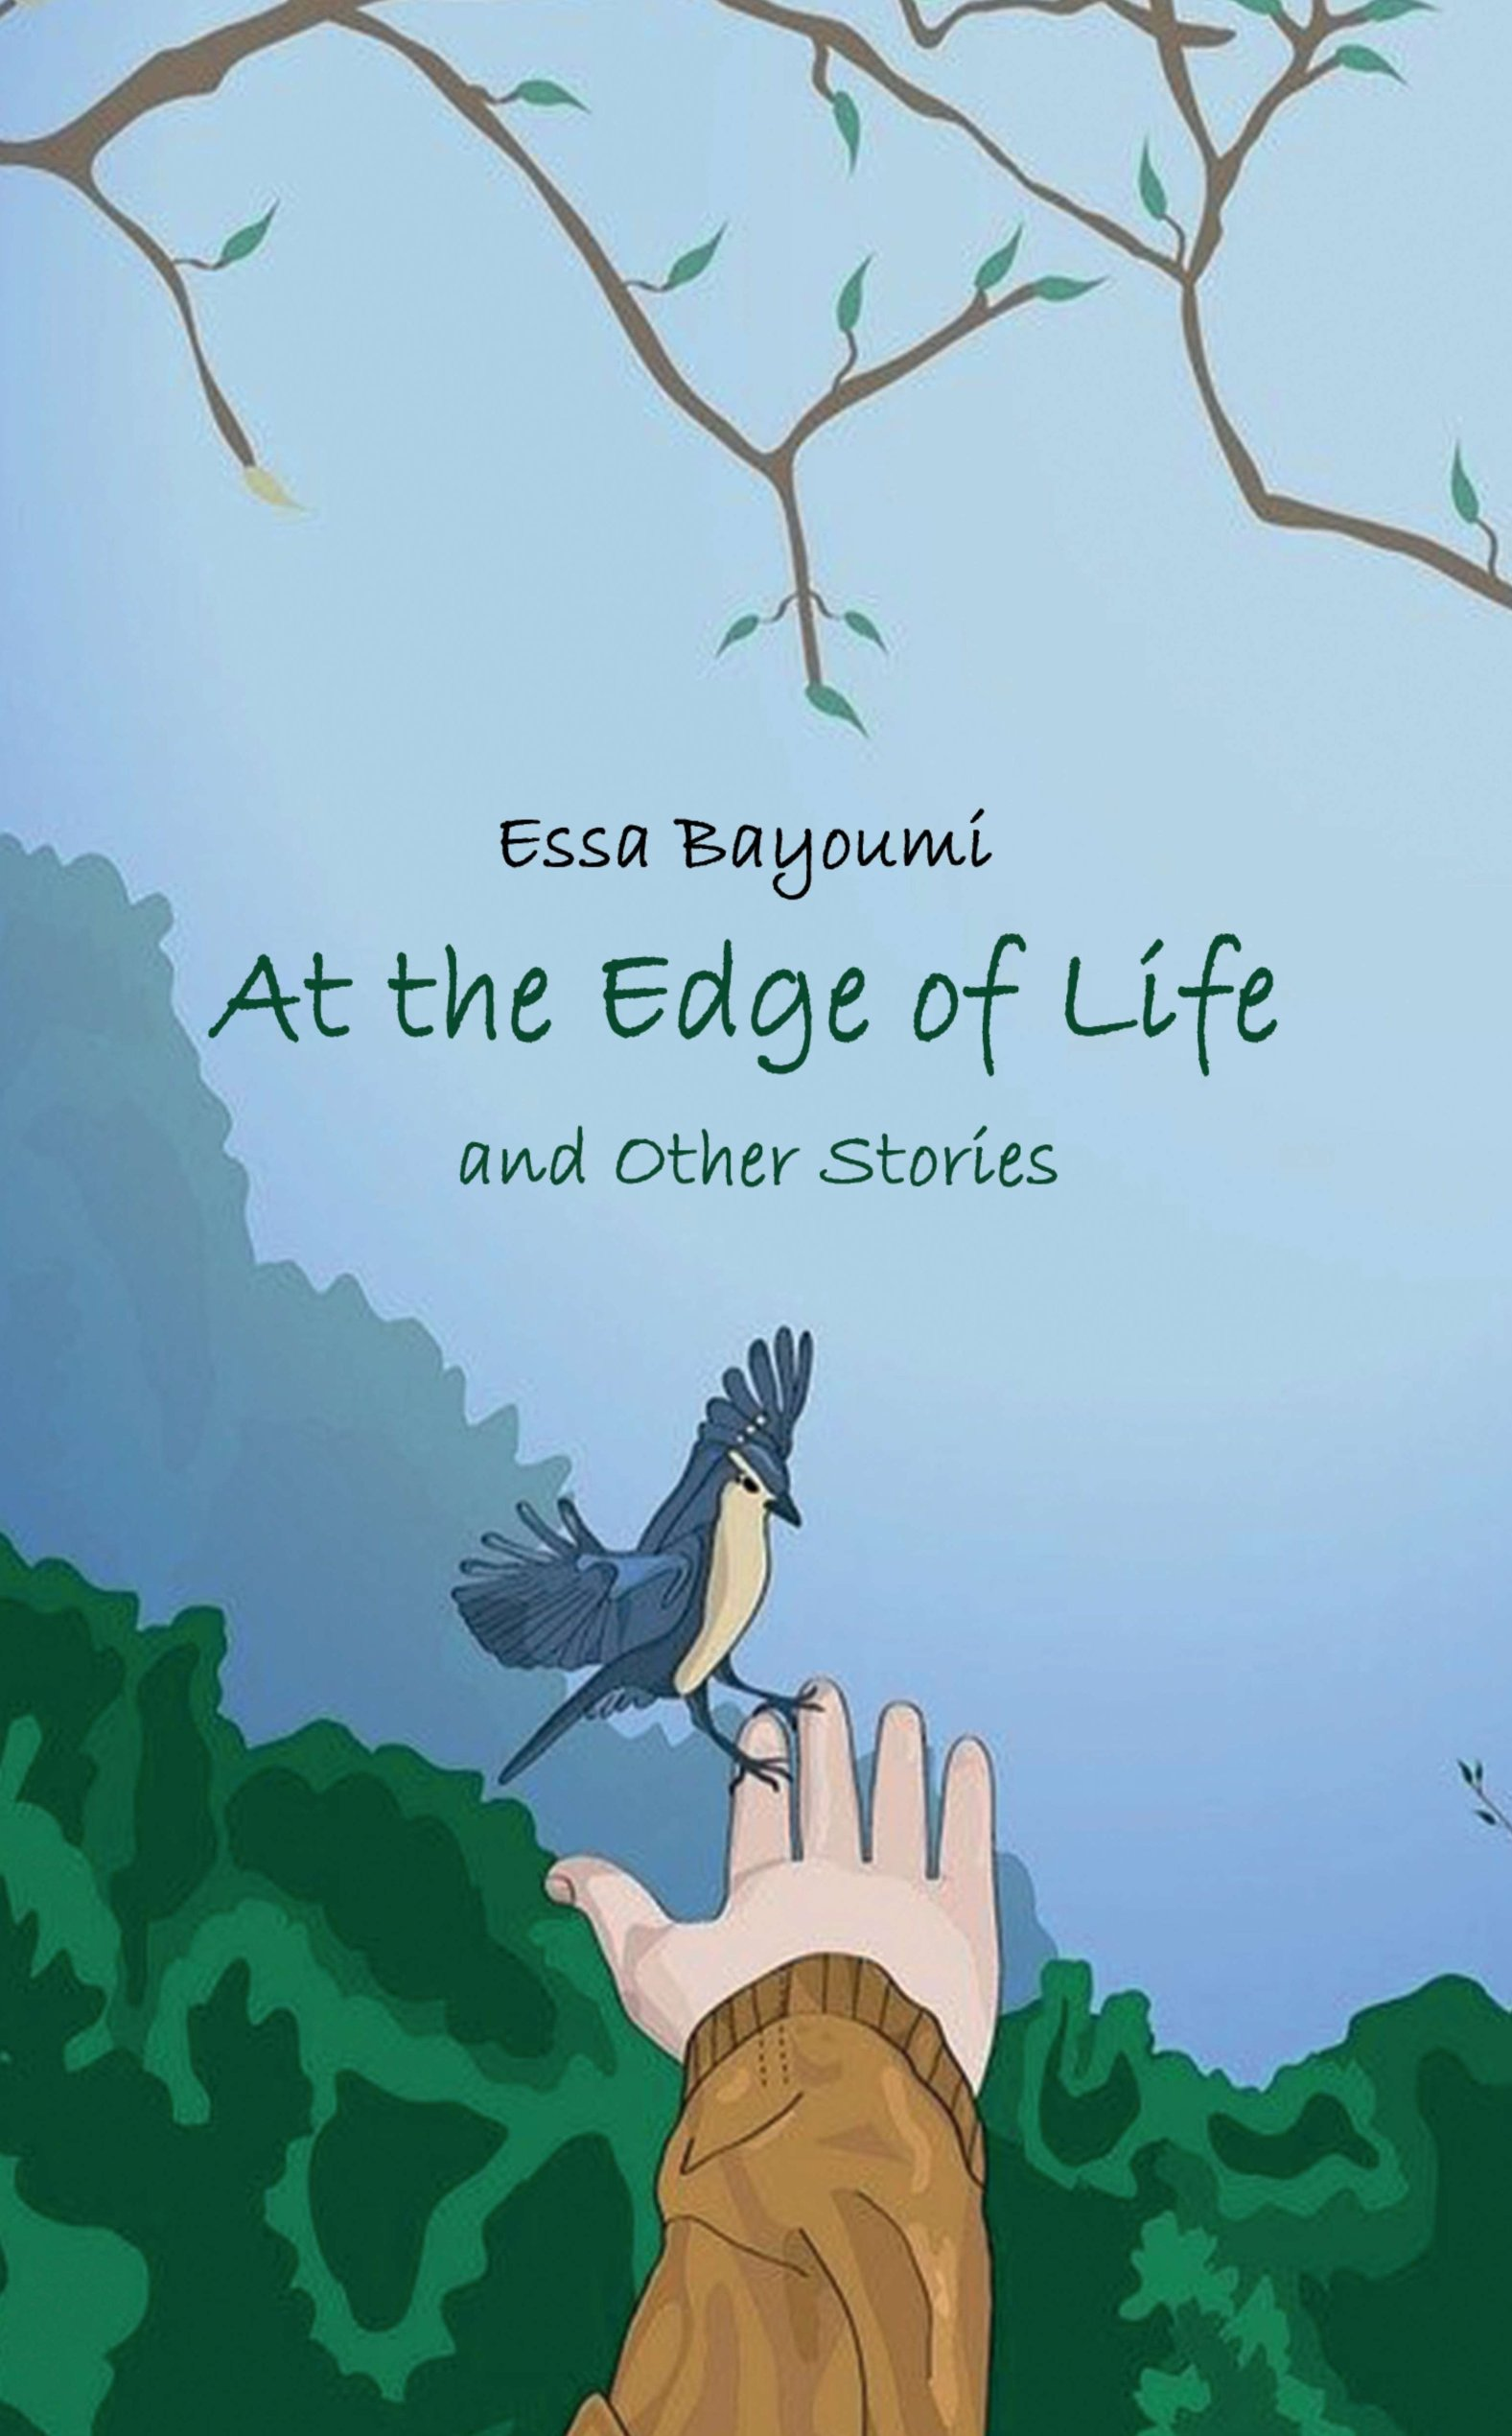 At the Edge of Life - 15 short stories that will change lives